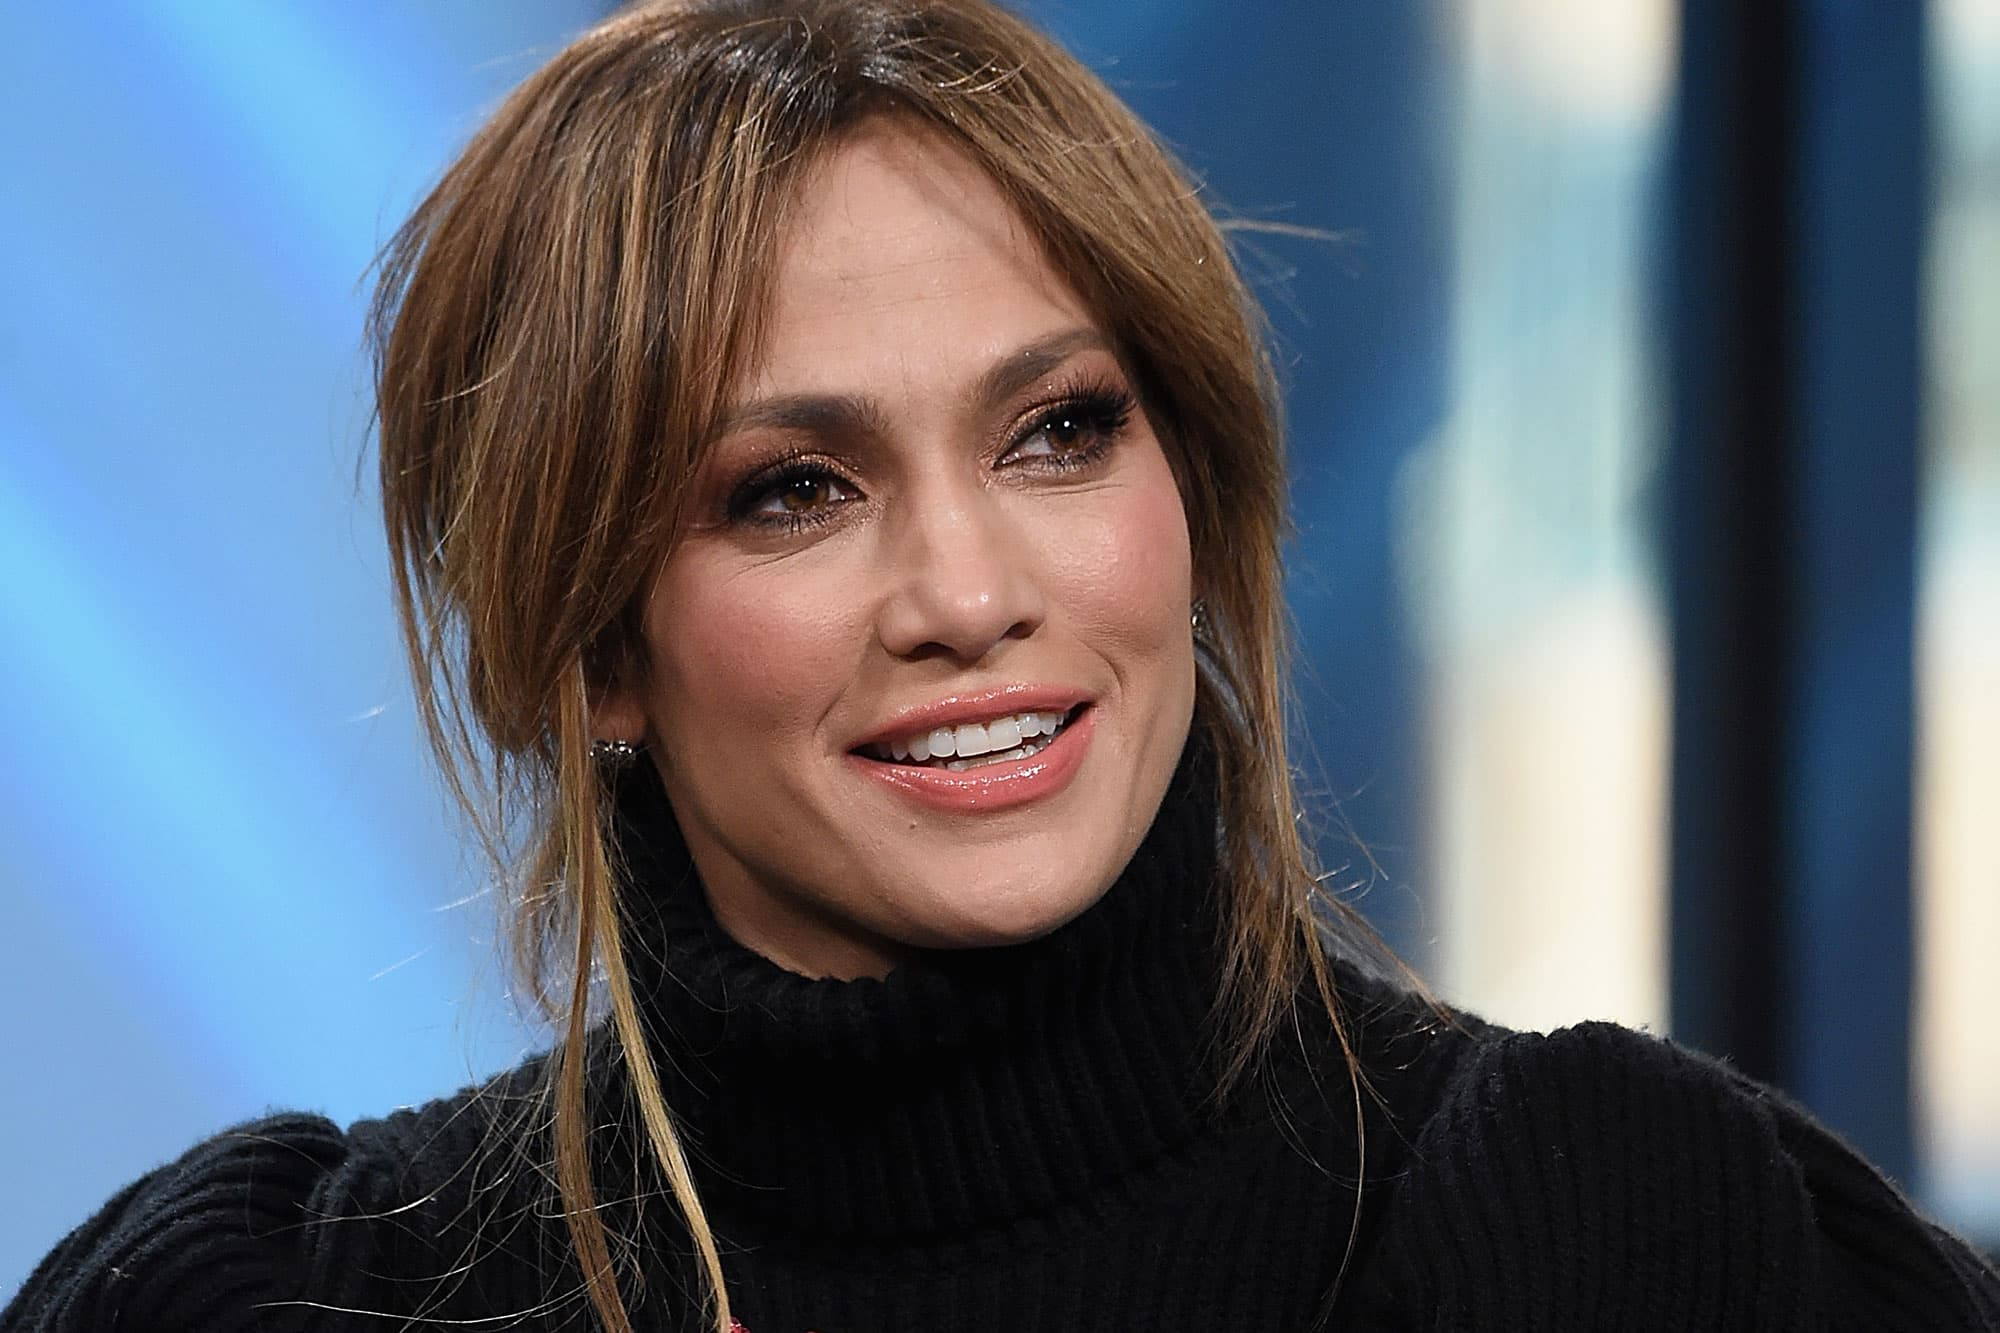 Jennifer Lopez on how to handle naysayers: 'Just be resilient. They'll give up'